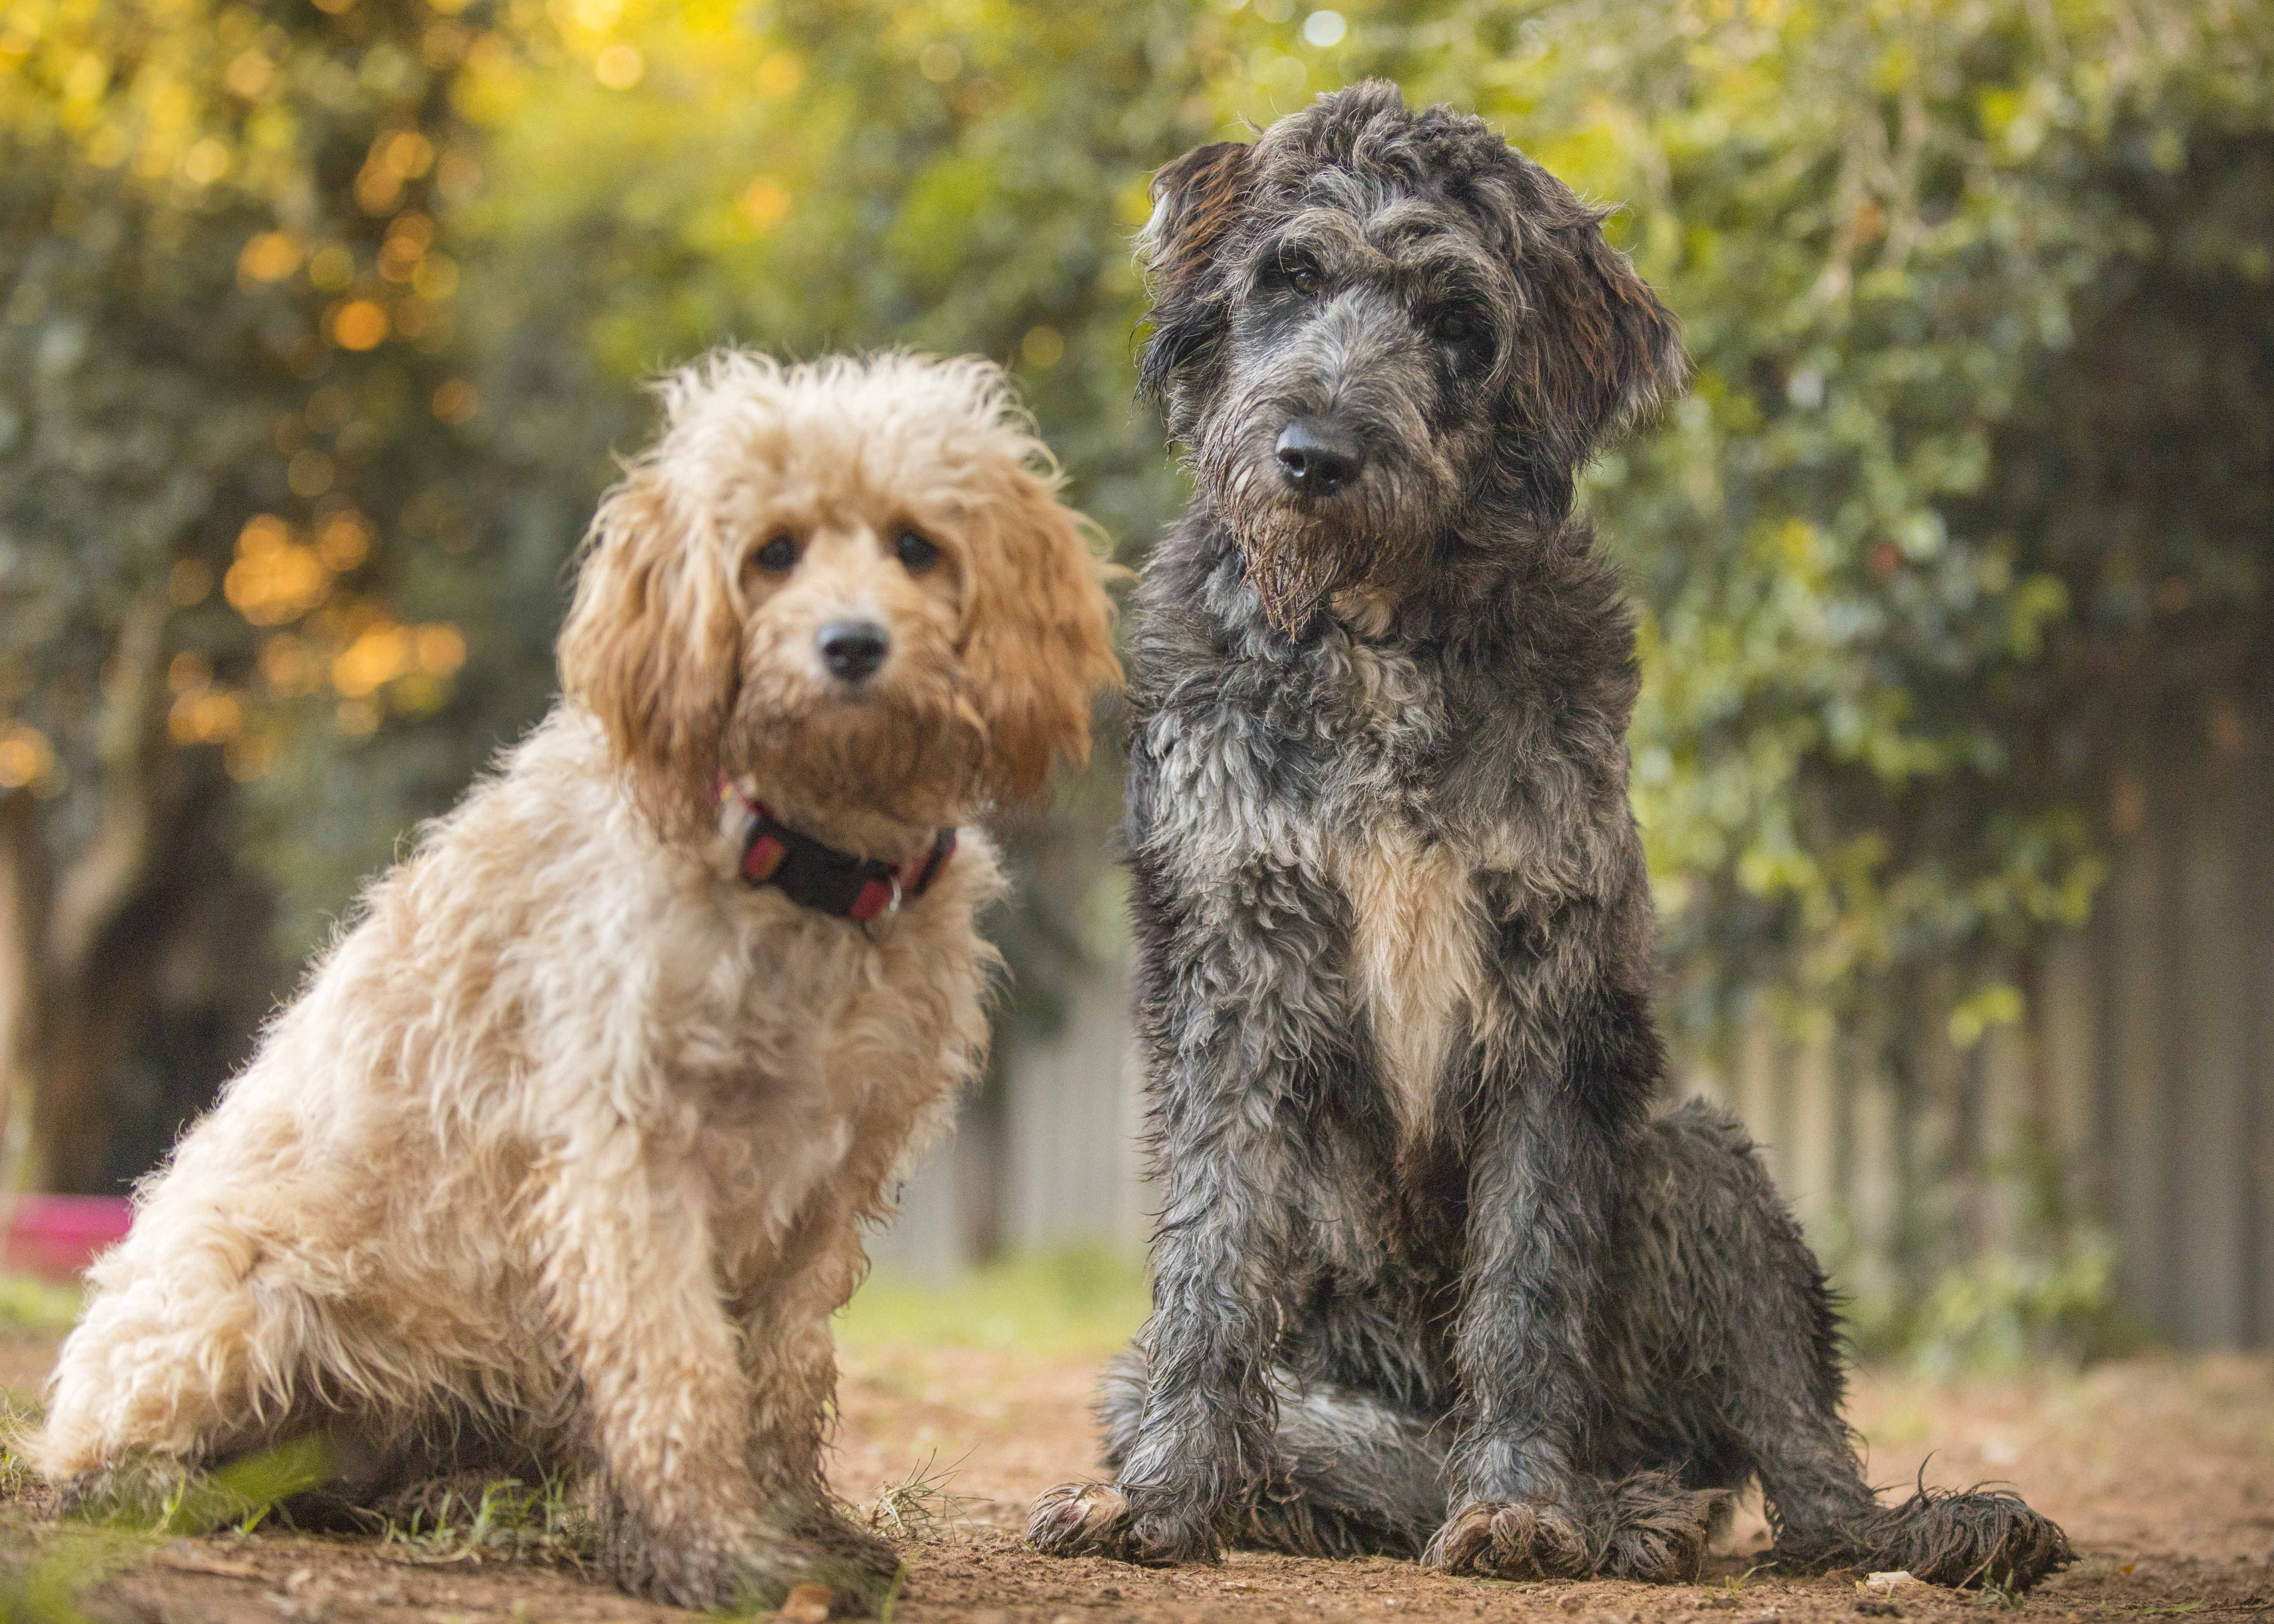 Manuka Is A Miniature Cavoodle Left And Harmaa Is A Blue Merle Bordoodle Border Collie Cross Poodle Bordoodle Border Collie Cross Poodle Poodle Cross Breeds